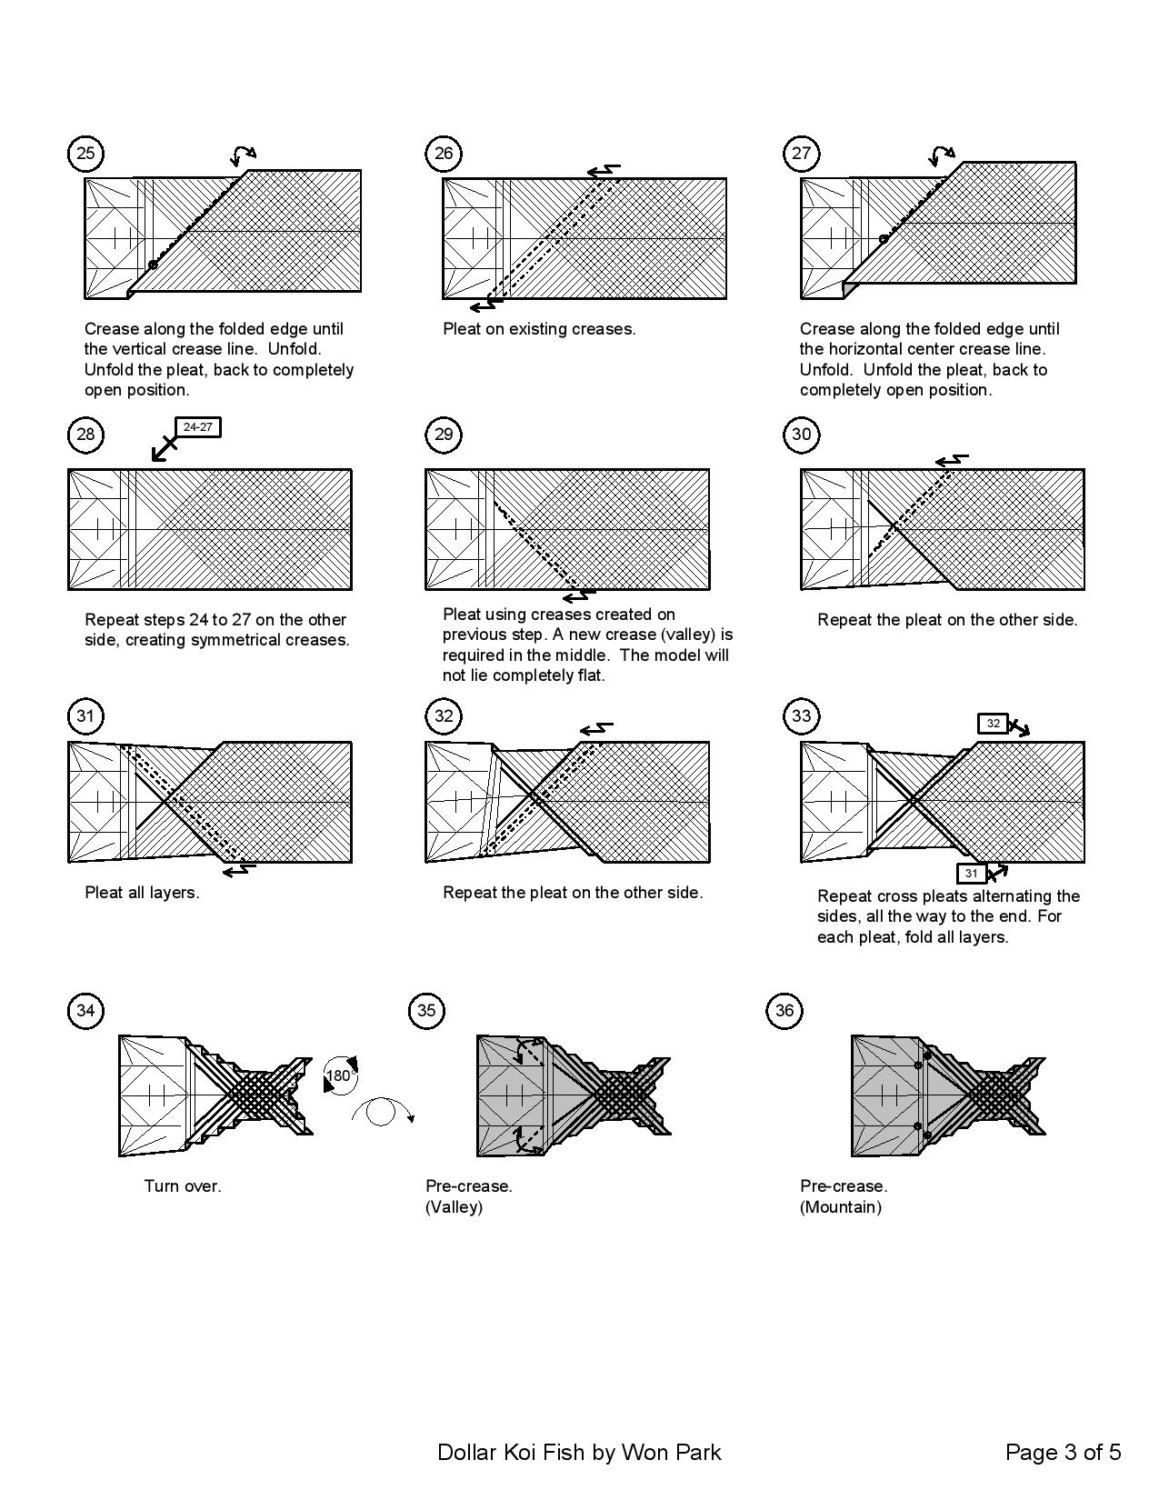 KOI FISH Diagram (3 of 5) Money Origami Dollar Bill Art ... - photo#1